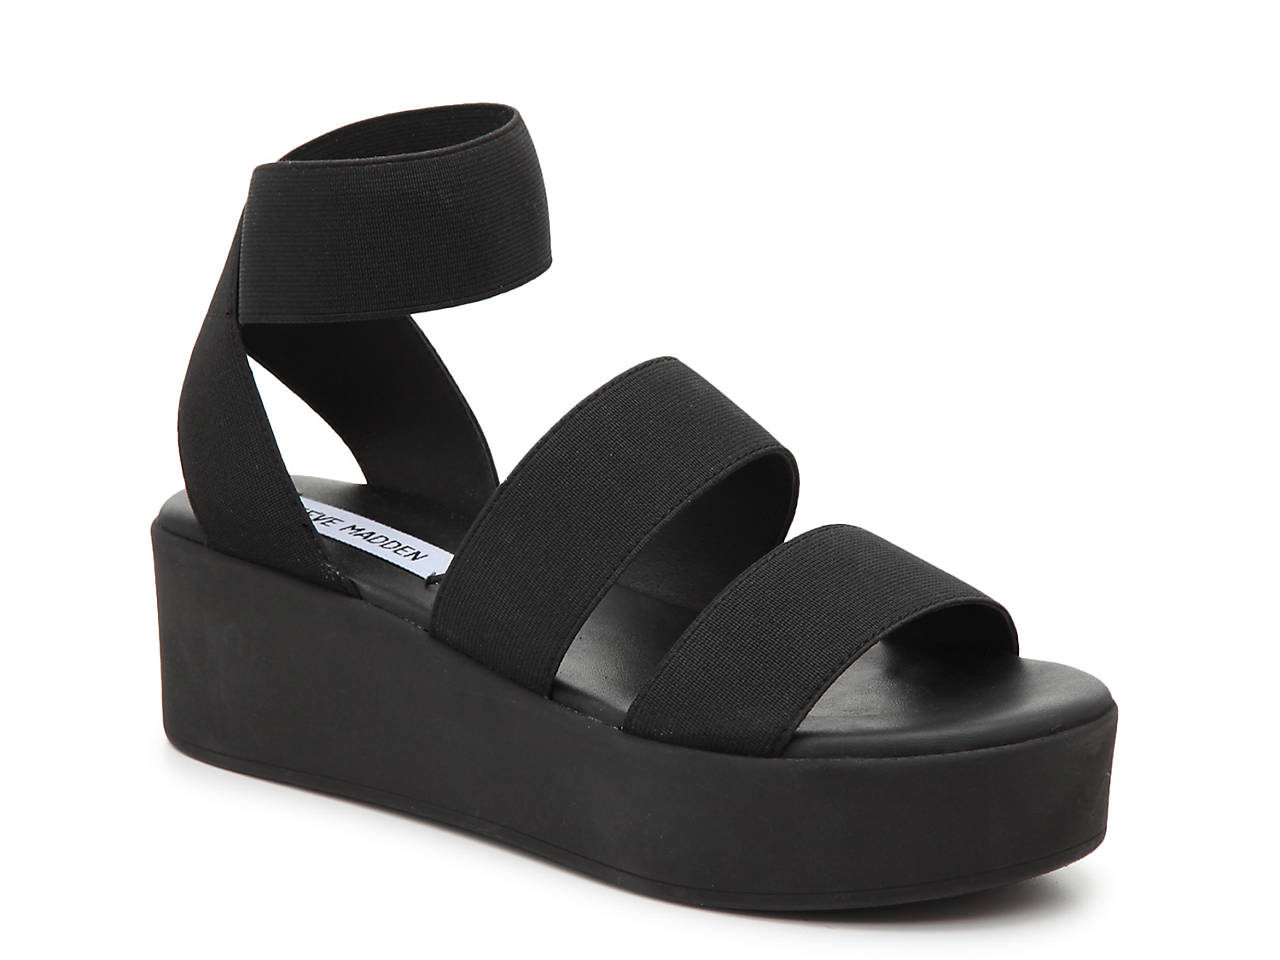 57ae4b71cb9 Jacory Wedge Sandal